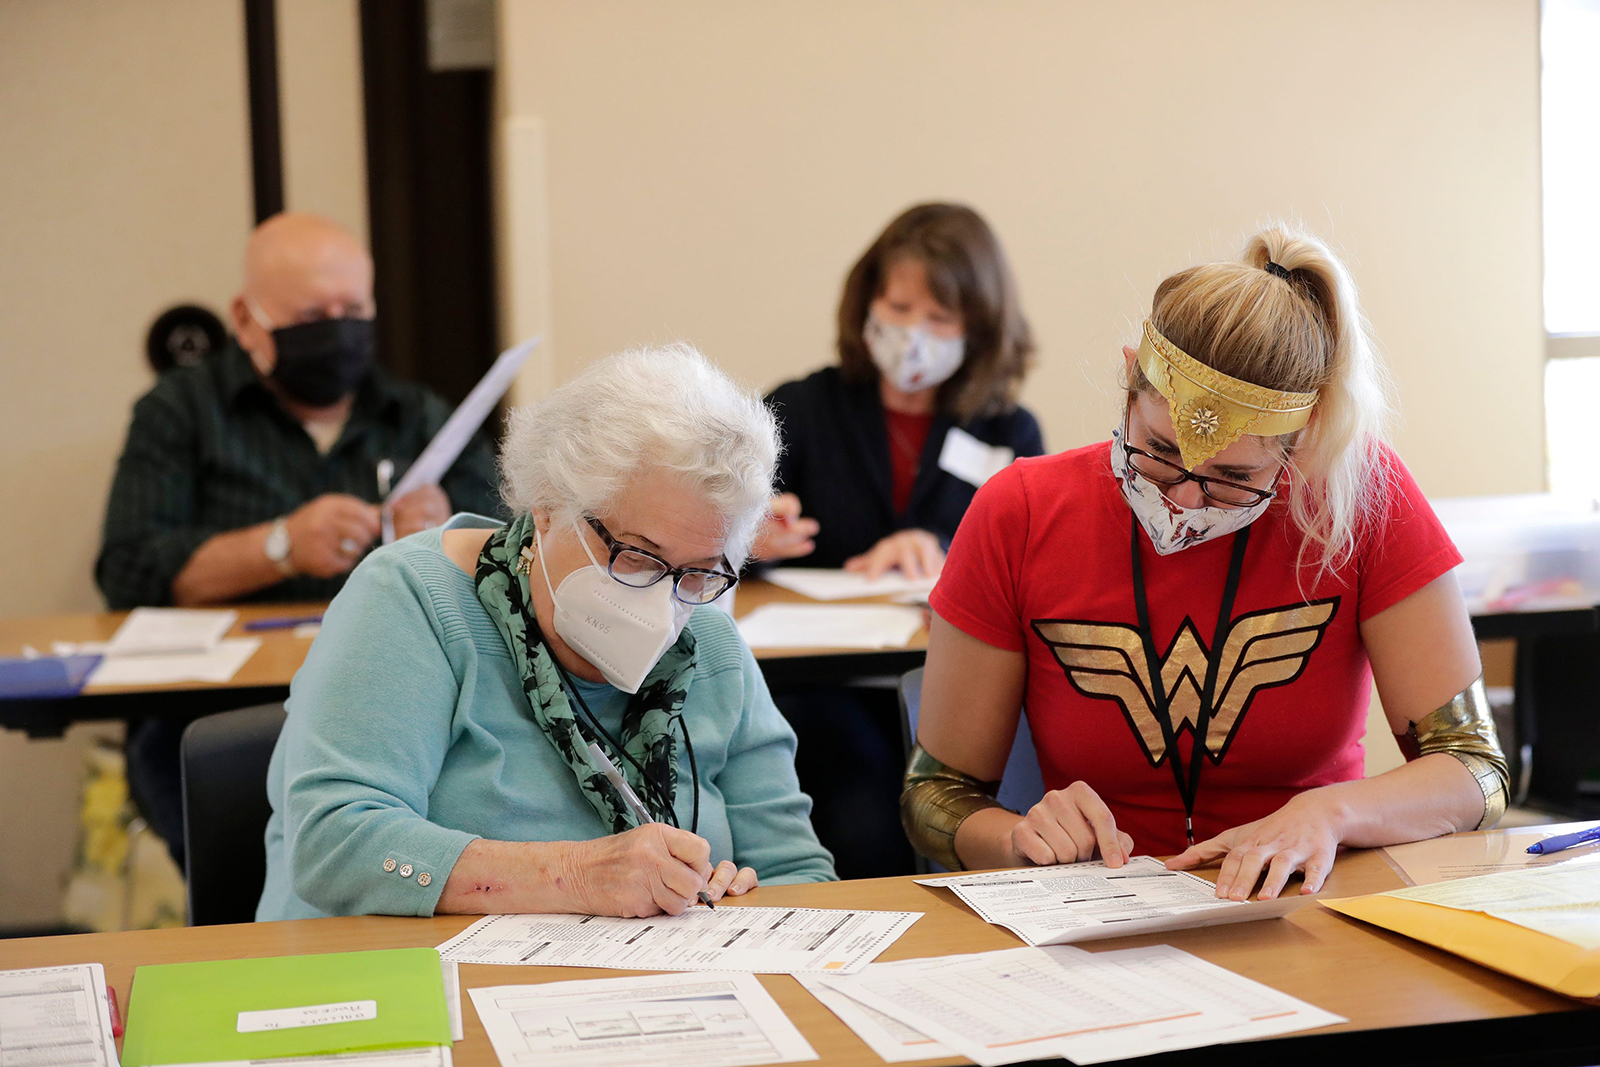 Jackie Lemberger, left, and Maureen Armstrong redo ballots that had a printer error at the Town Center Park on Tuesday, November 3, in Grand Chute, Outagamie County, Wisconsin.